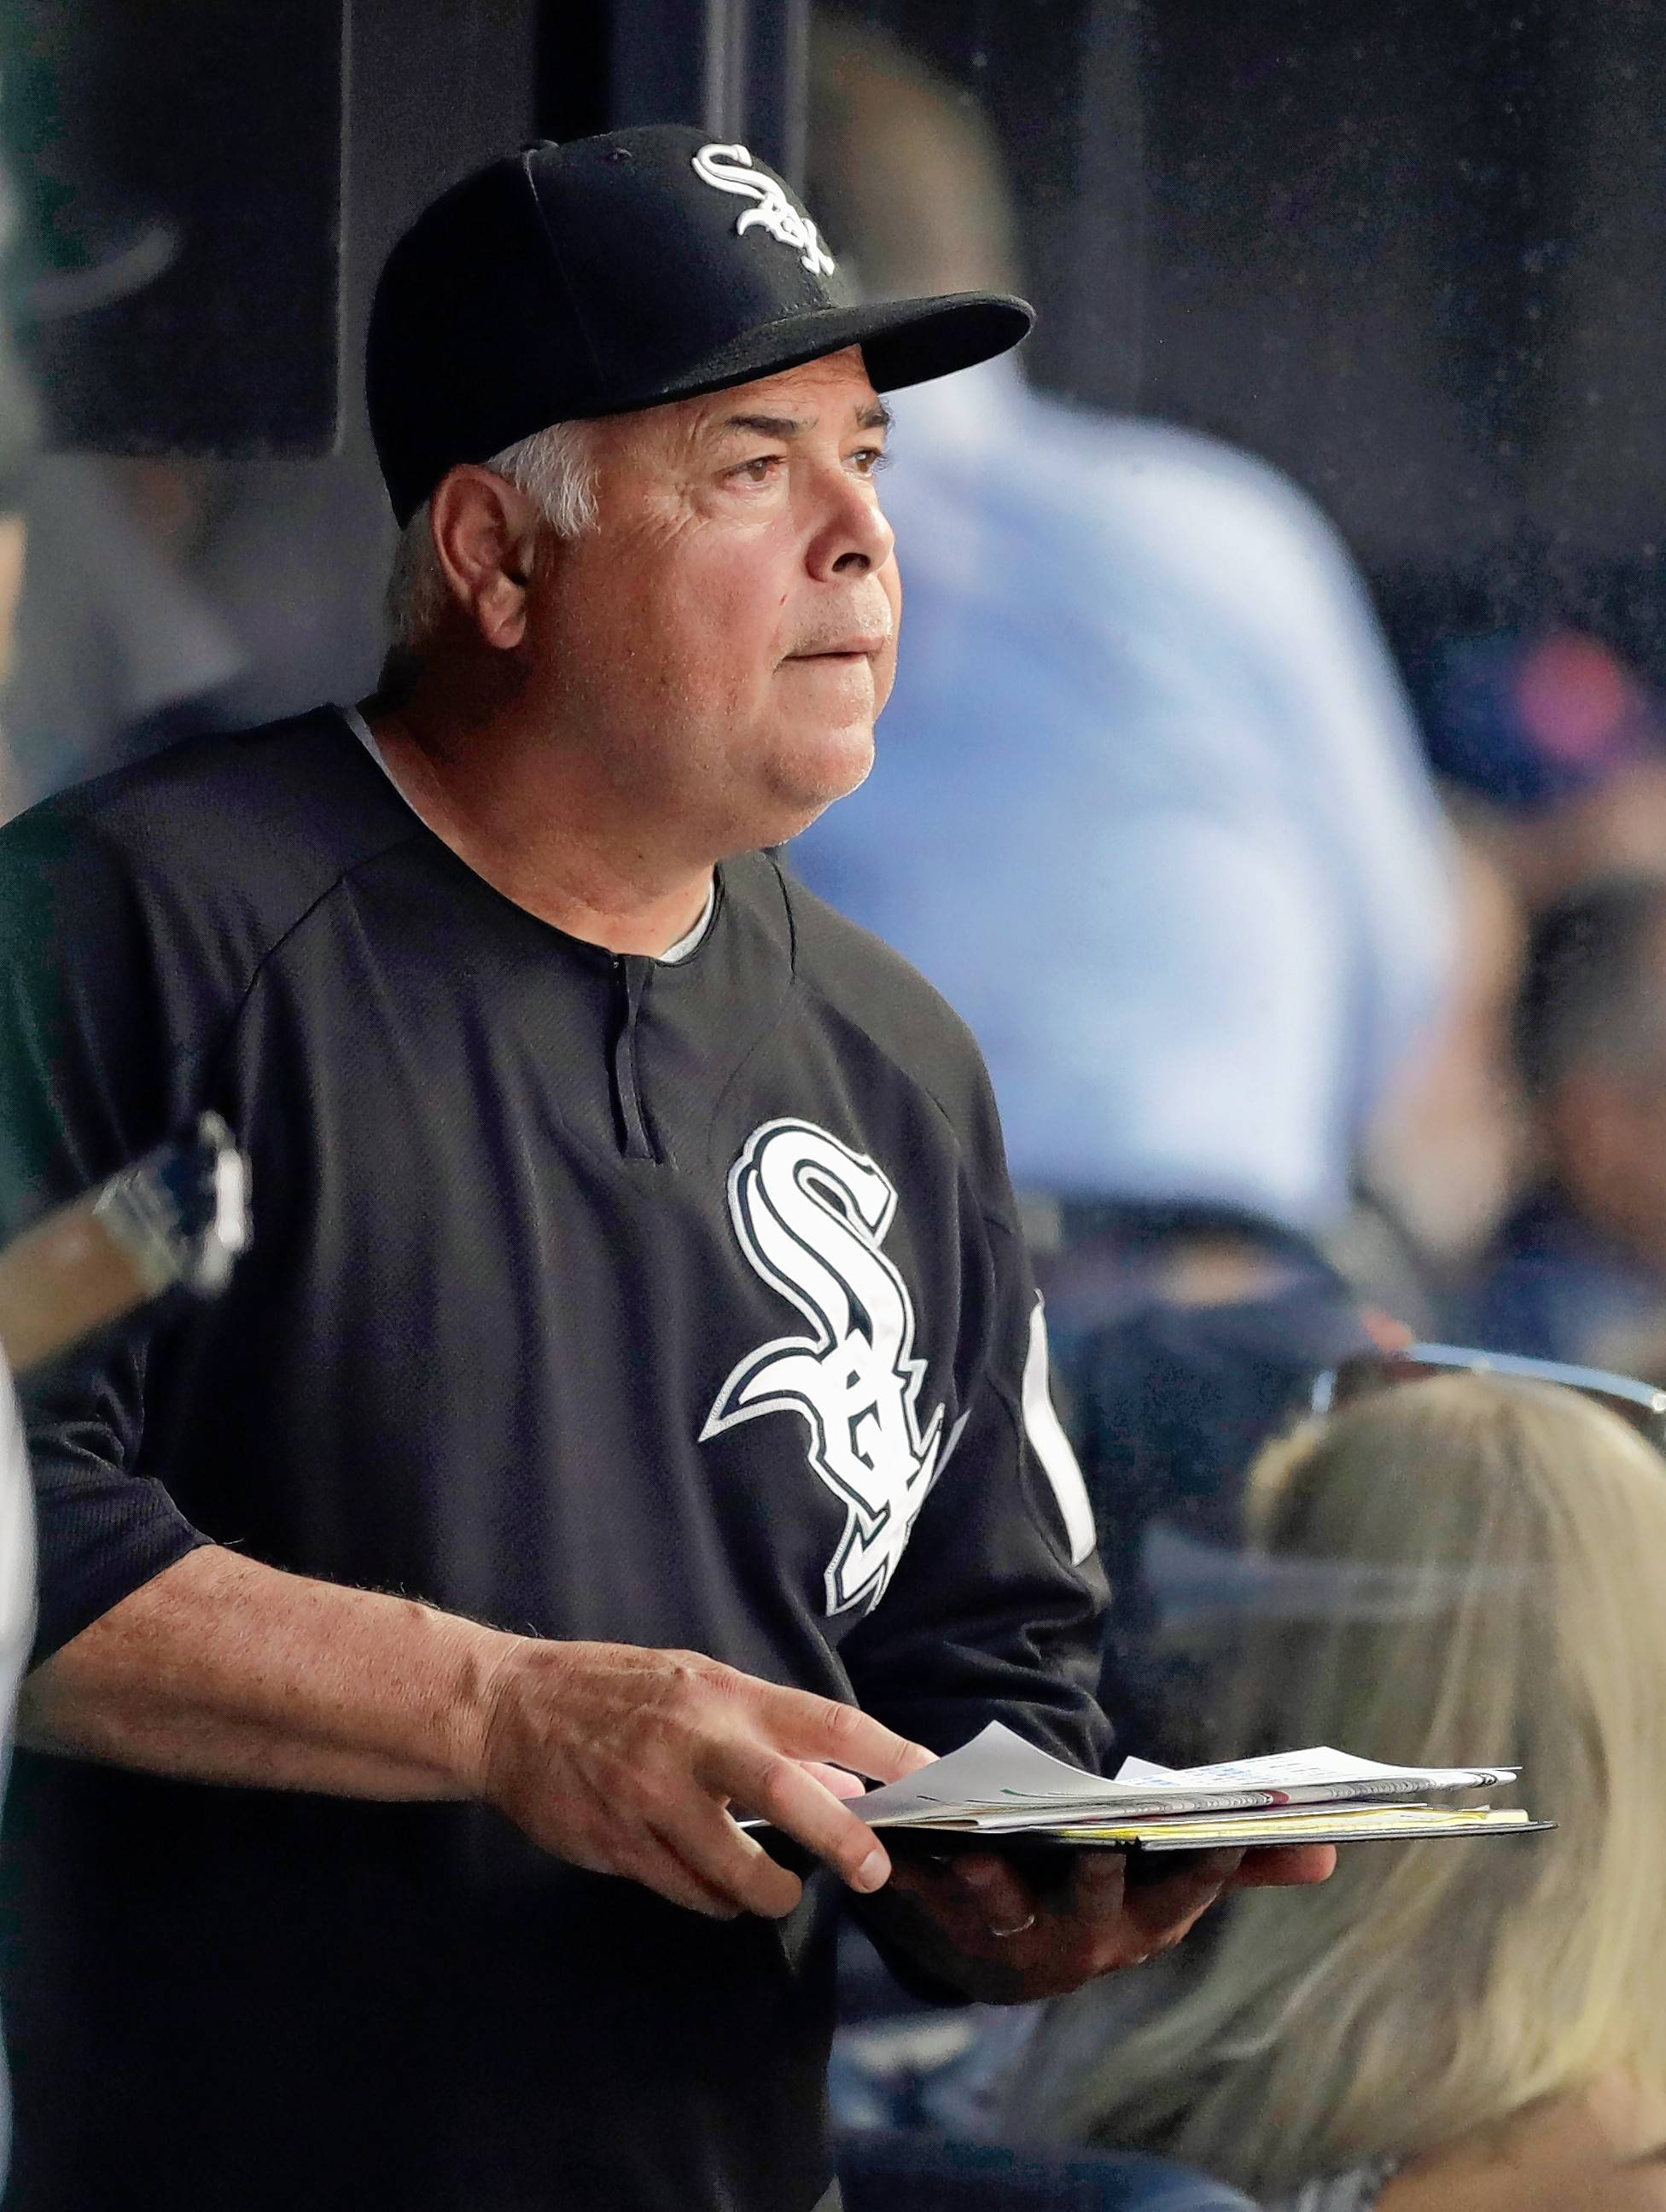 White Sox manager Rick Renteria will not be at the ballpark for Tuesday's game after being released from a Minneapolis hospital.